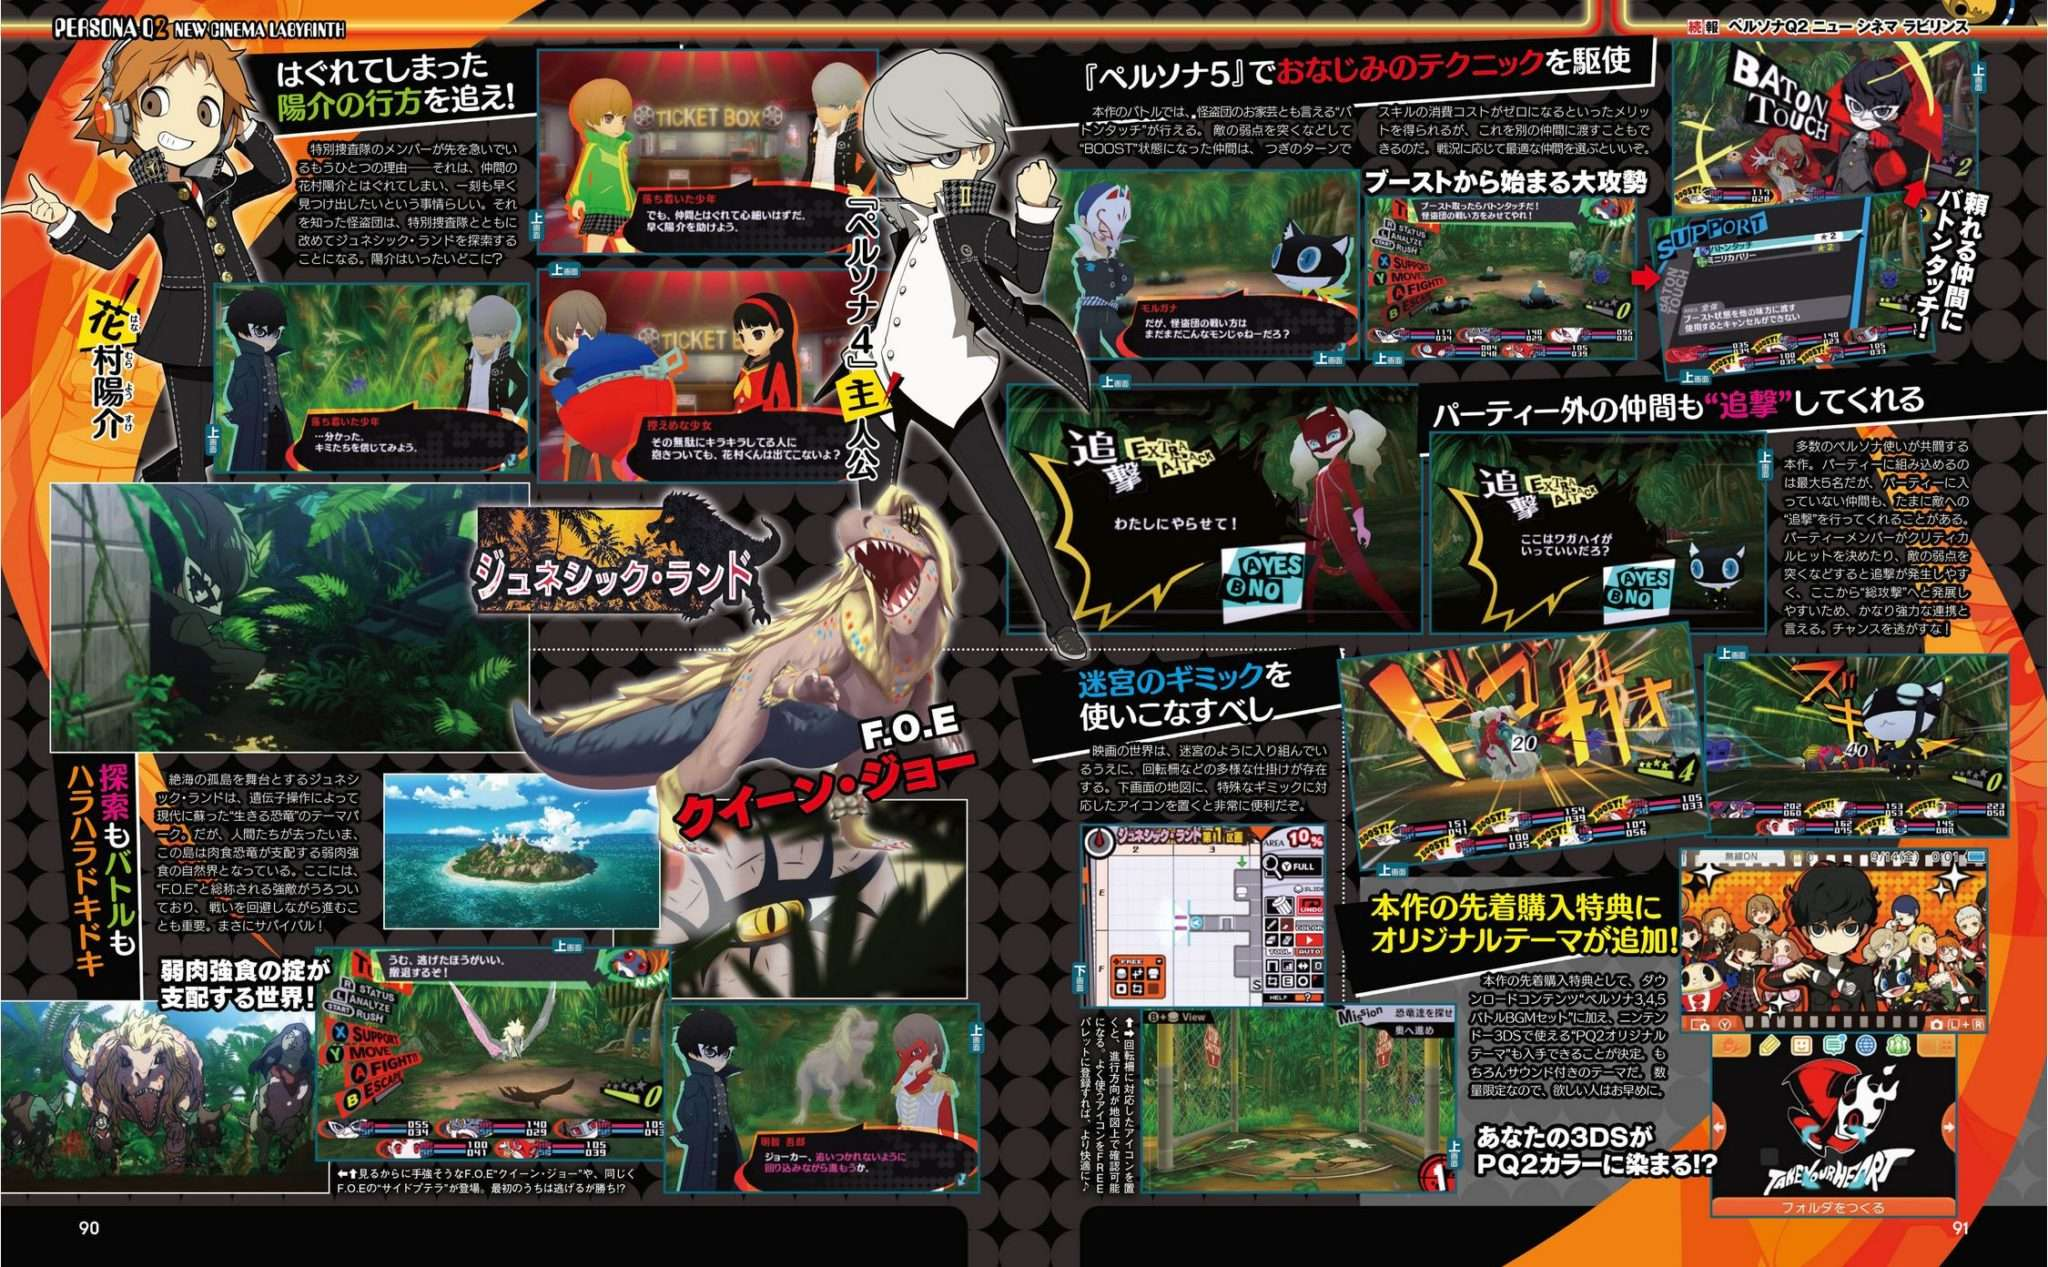 Persona Q2: New Cinema Labyrinth Scans Feature Second